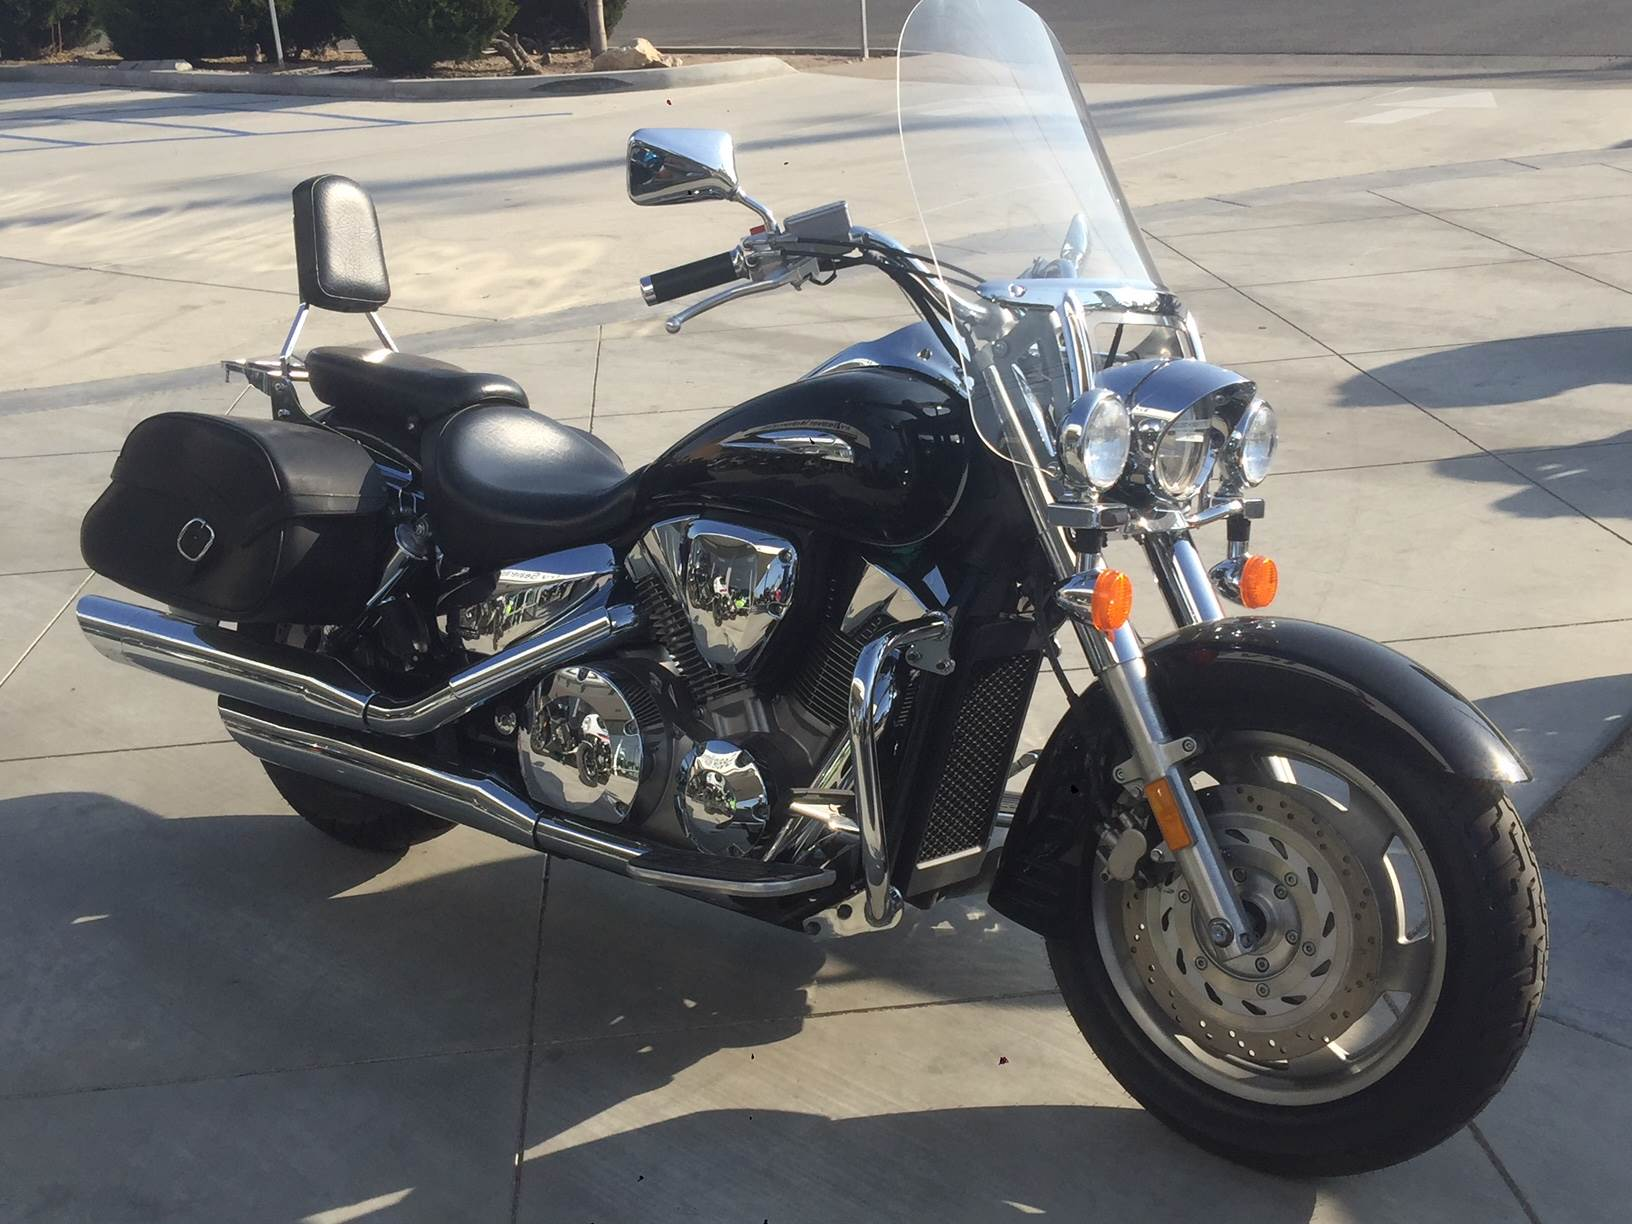 2007 Honda VTX™1300R in Orange, California